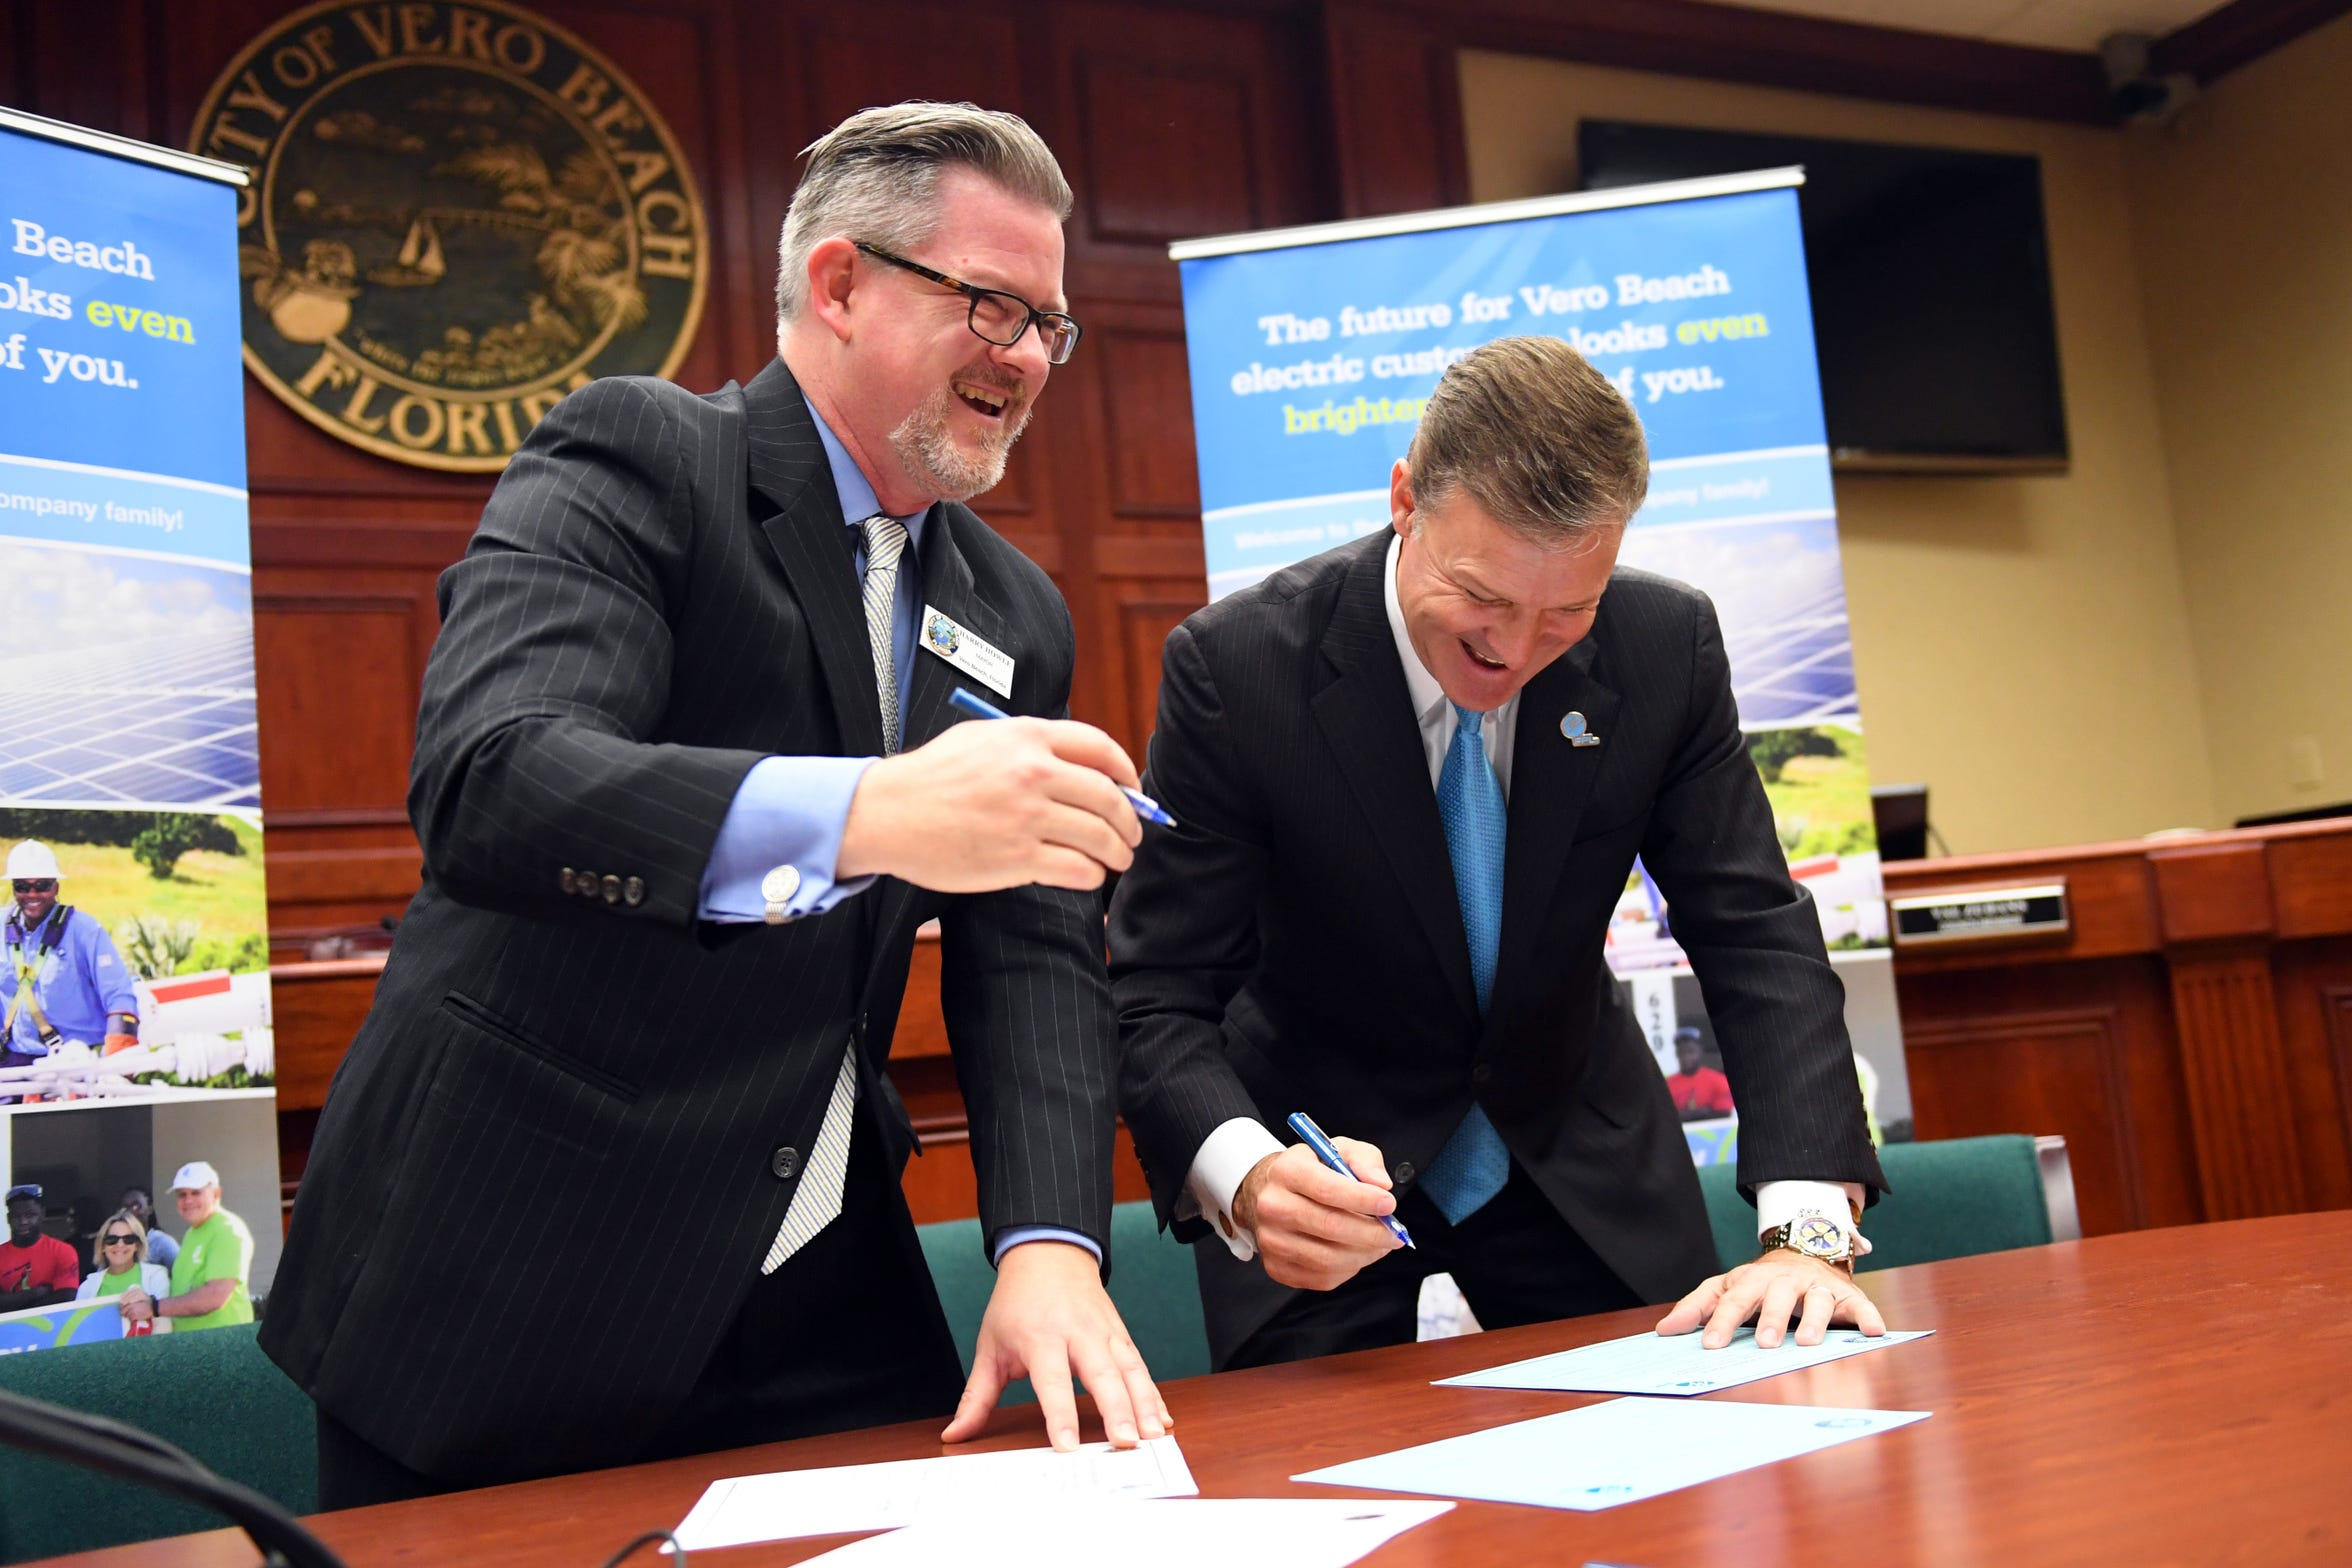 City of Vero Beach Mayor Harry Howle (left) and Eric Silagy, president of Florida Power & Light Co., share a laugh Dec. 17, 2018, as they sign the final paper work for the sale of the Vero Beach electric system to FPL during a public ceremony at City Hall in Vero Beach.